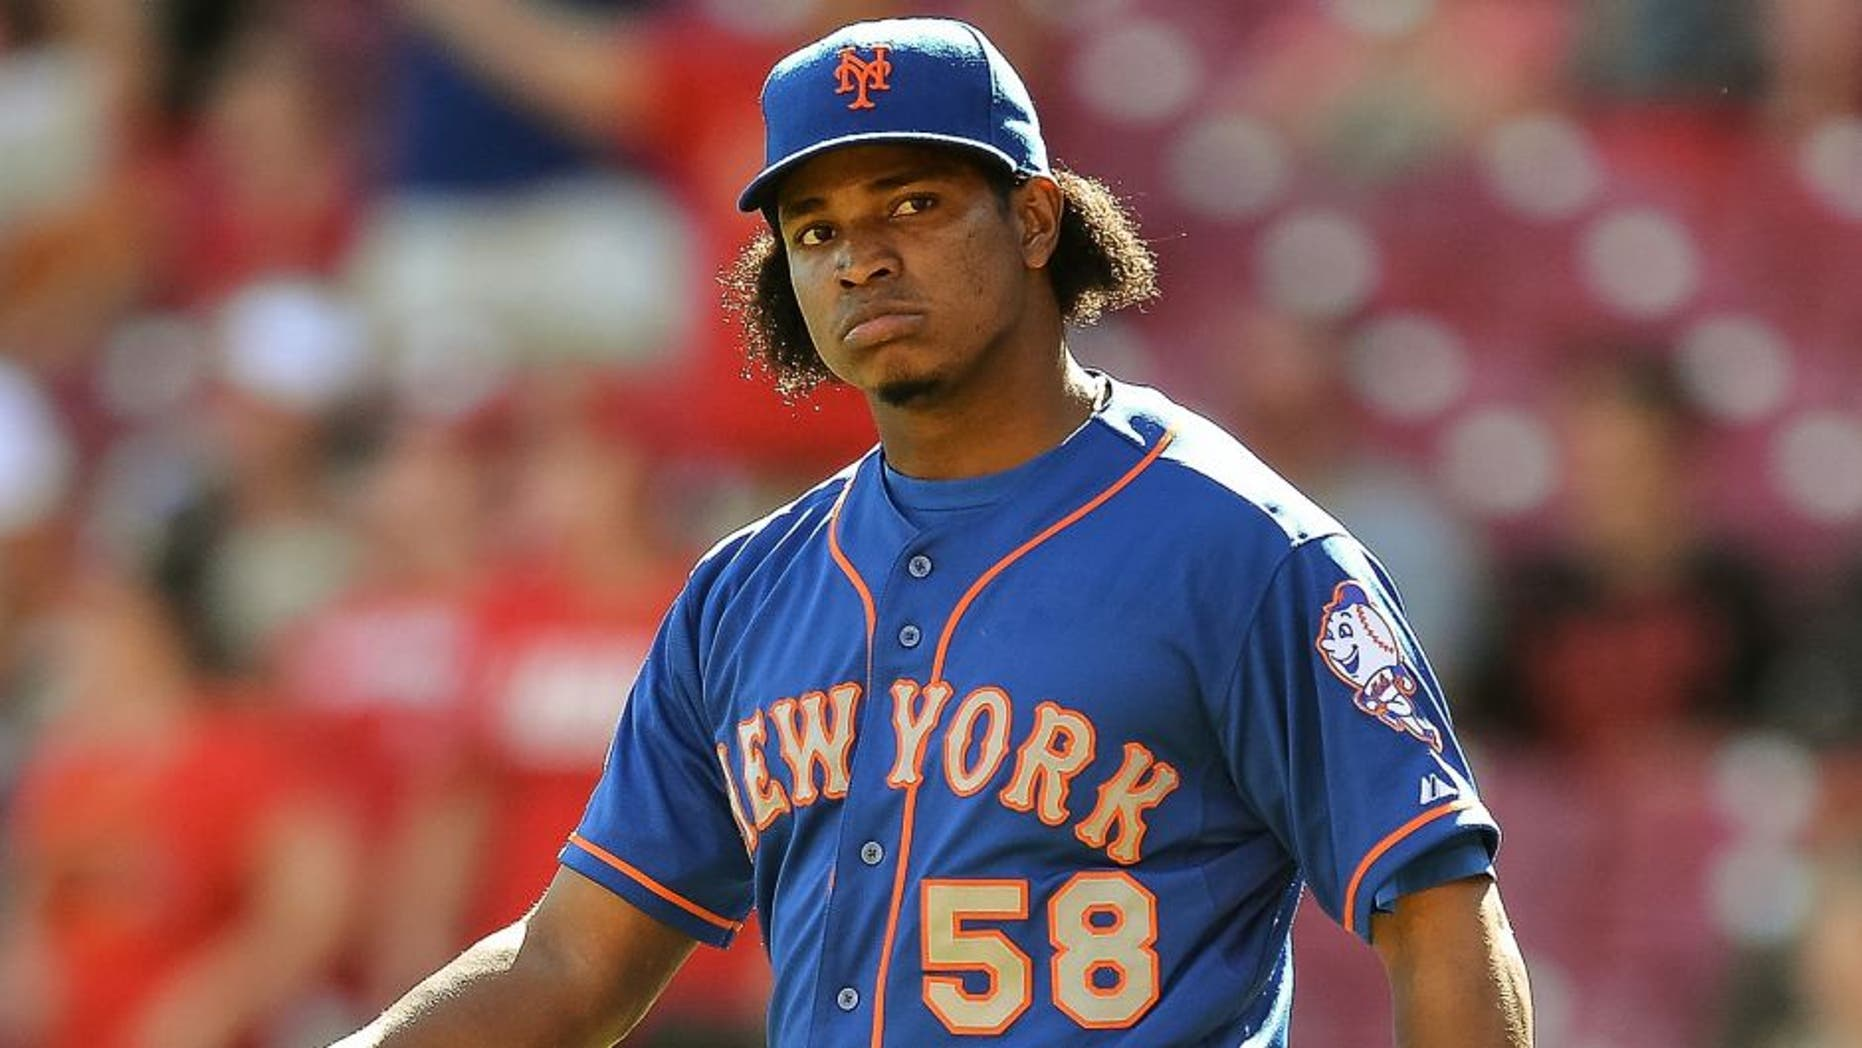 CINCINNATI, OH - SEPTEMBER 7: Jenrry Mejia #58 of the New York Mets pitches against the Cincinnati Reds at Great American Ball Park on September 7, 2014 in Cincinnati, Ohio. (Photo by Jamie Sabau/Getty Images) *** Local Caption *** Jenrry Mejia